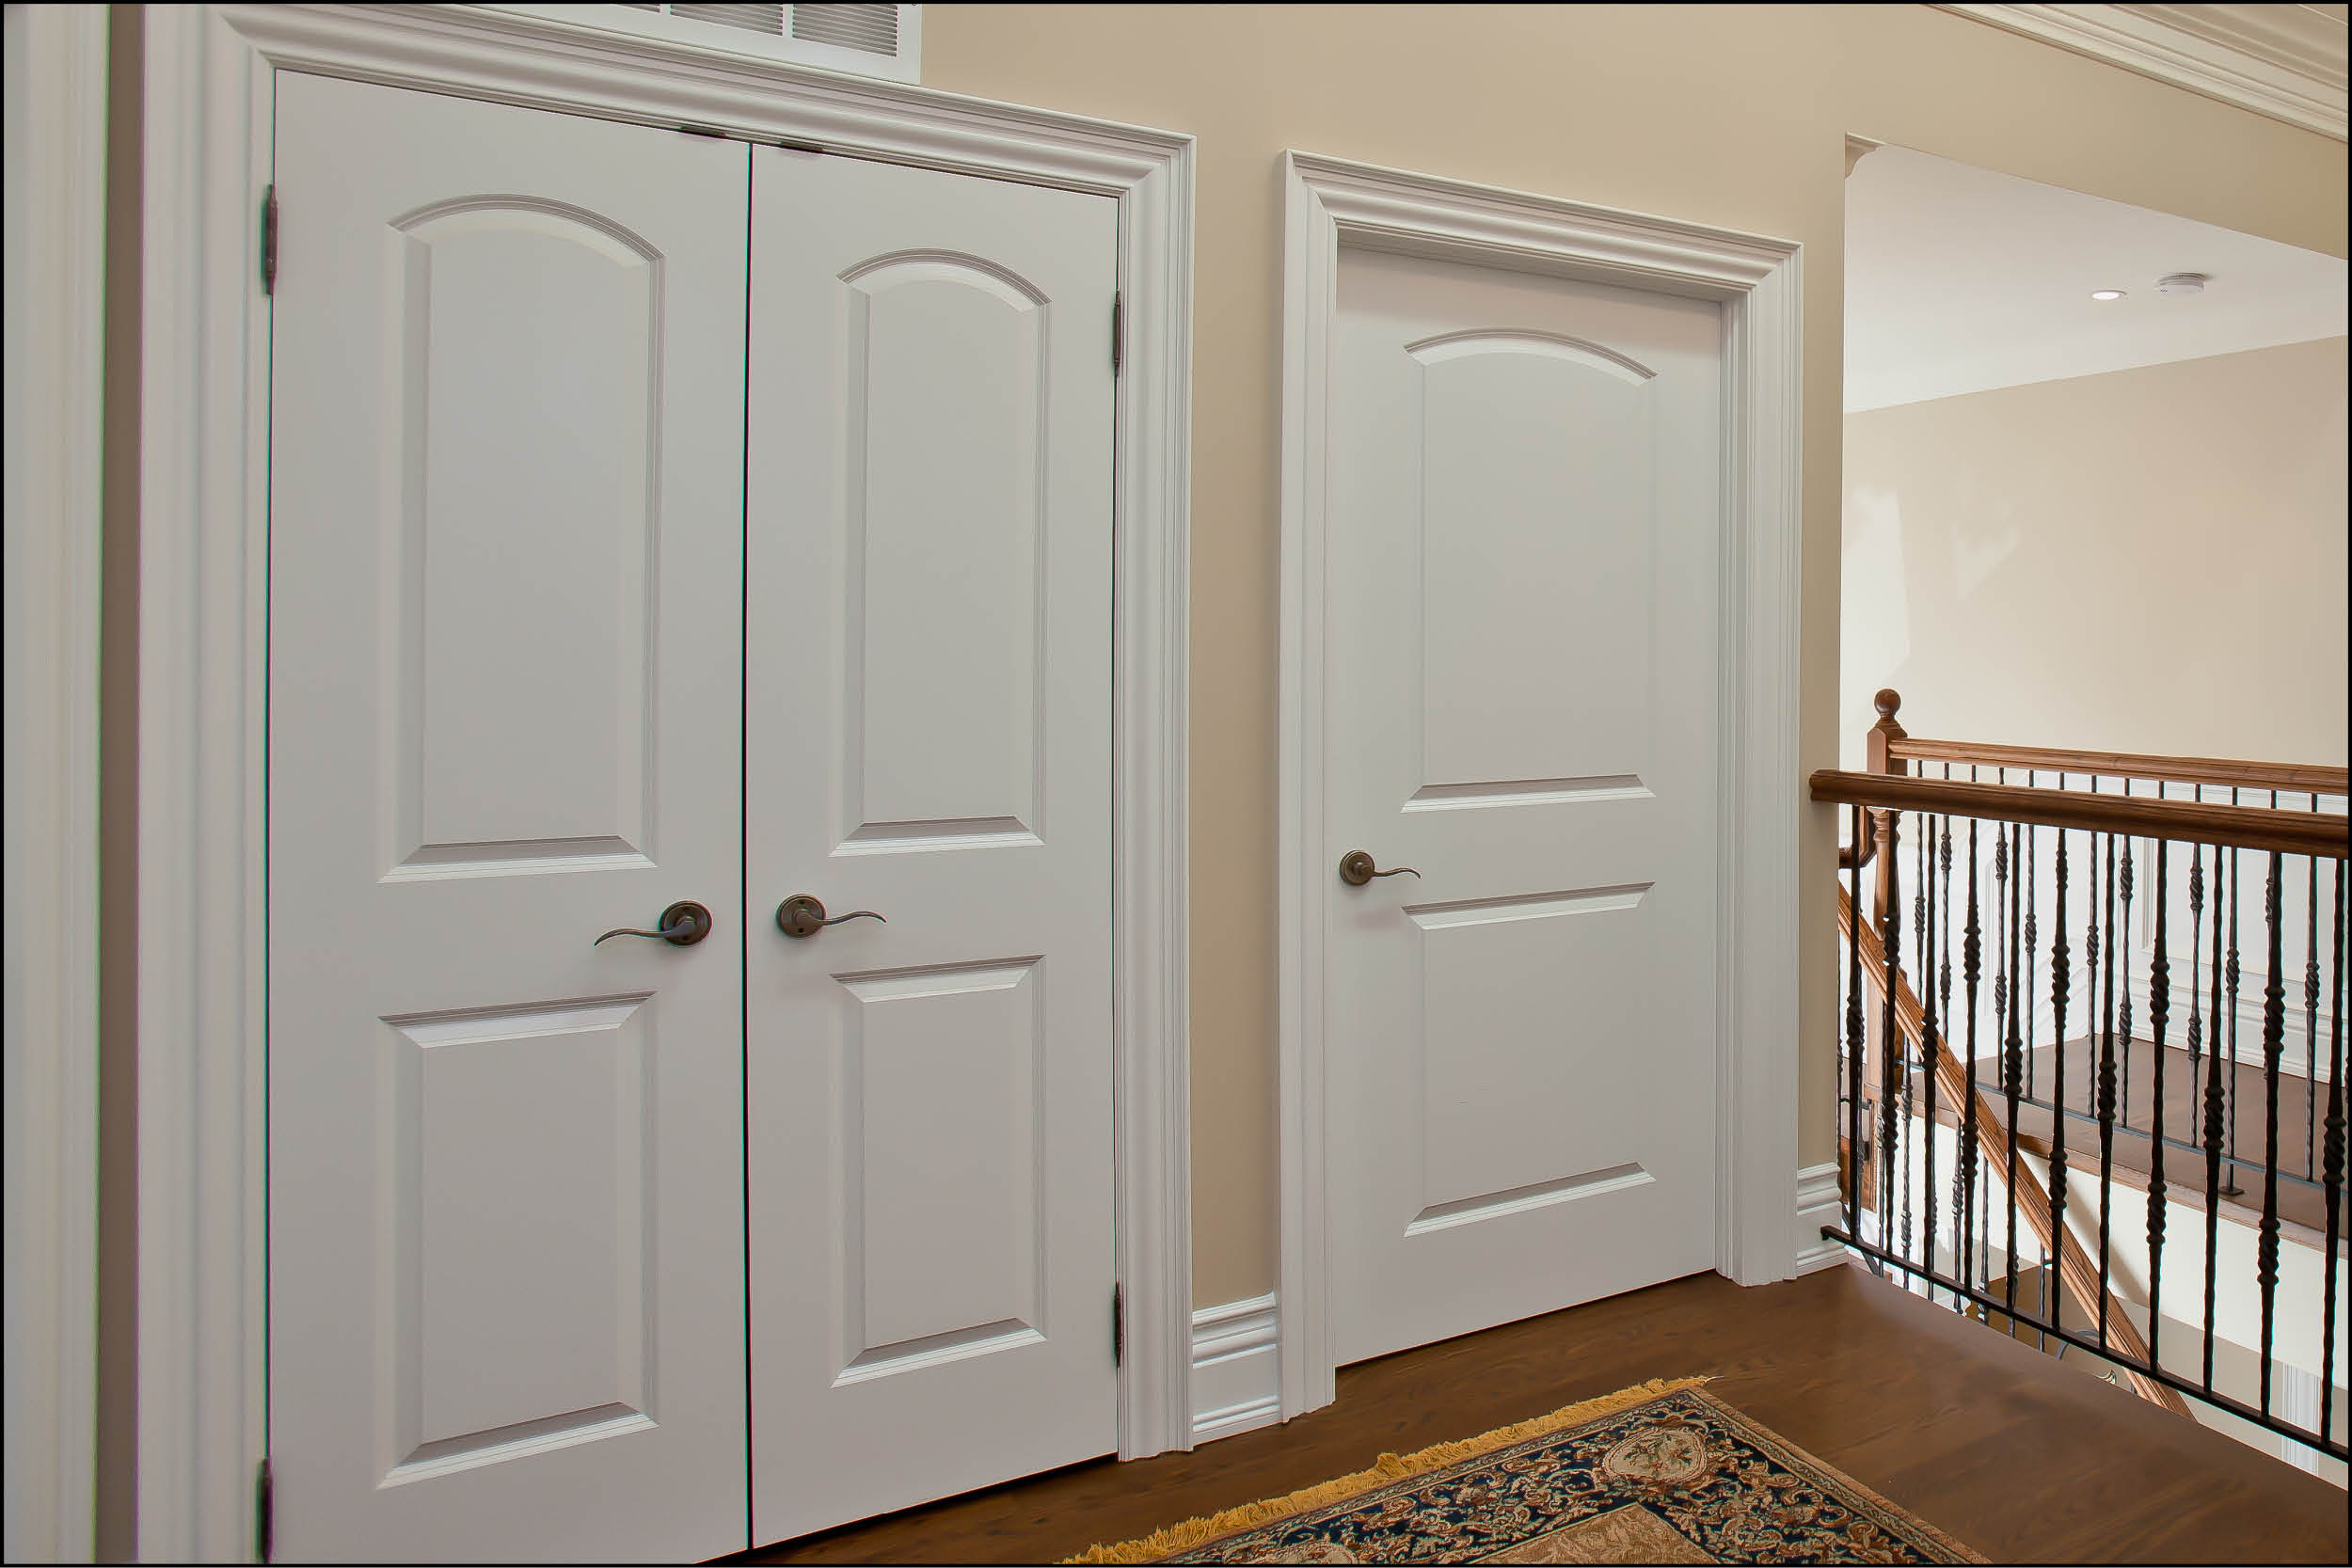 kobyco interior doors gallery 6 - Interior Doors